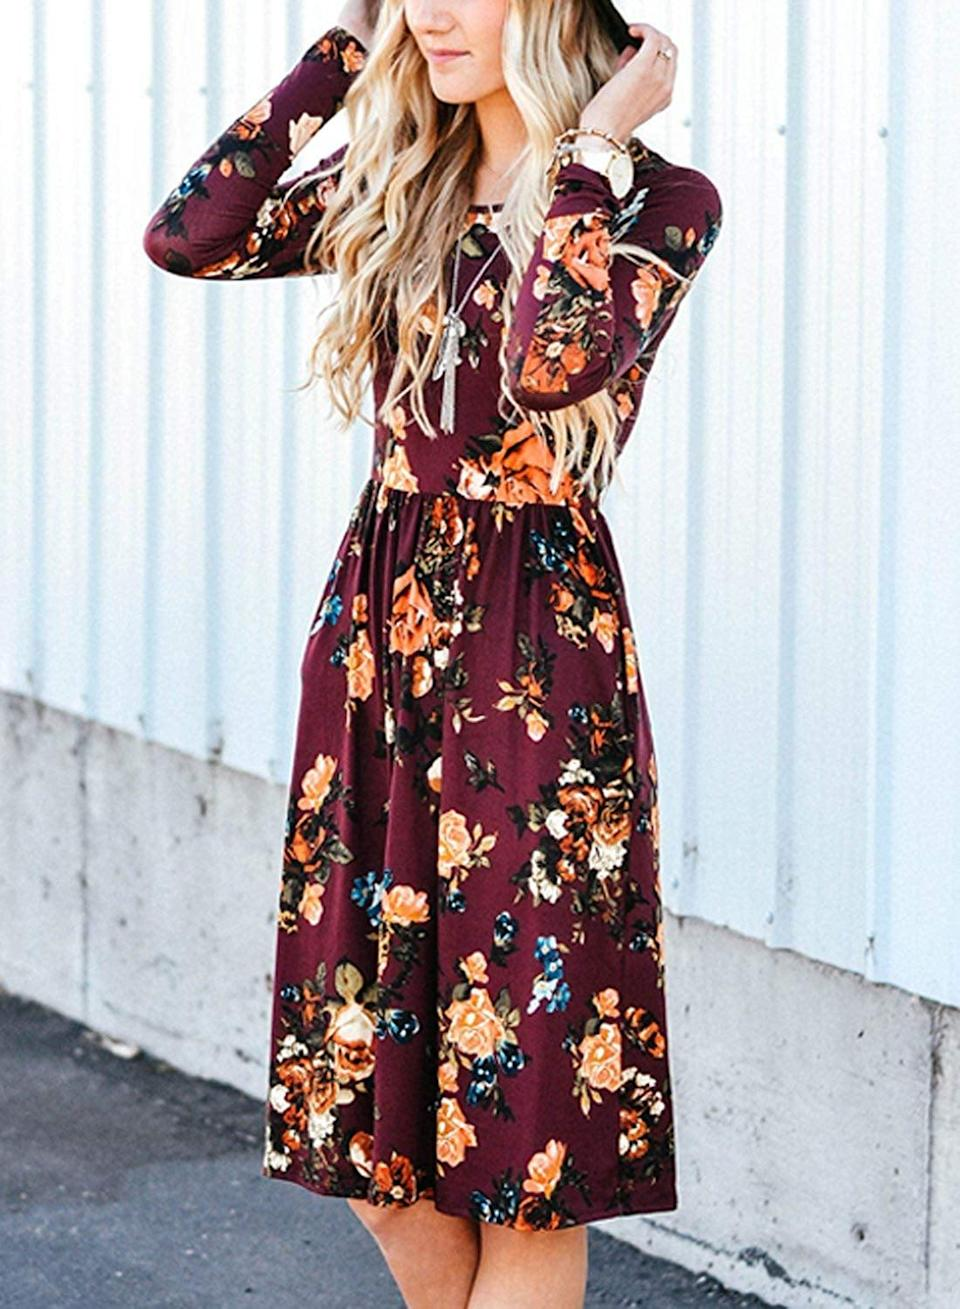 <p>This <span>Zesica Long-Sleeved Floral Dress</span> ($30) is one of the bestselling pieces on the site.</p>